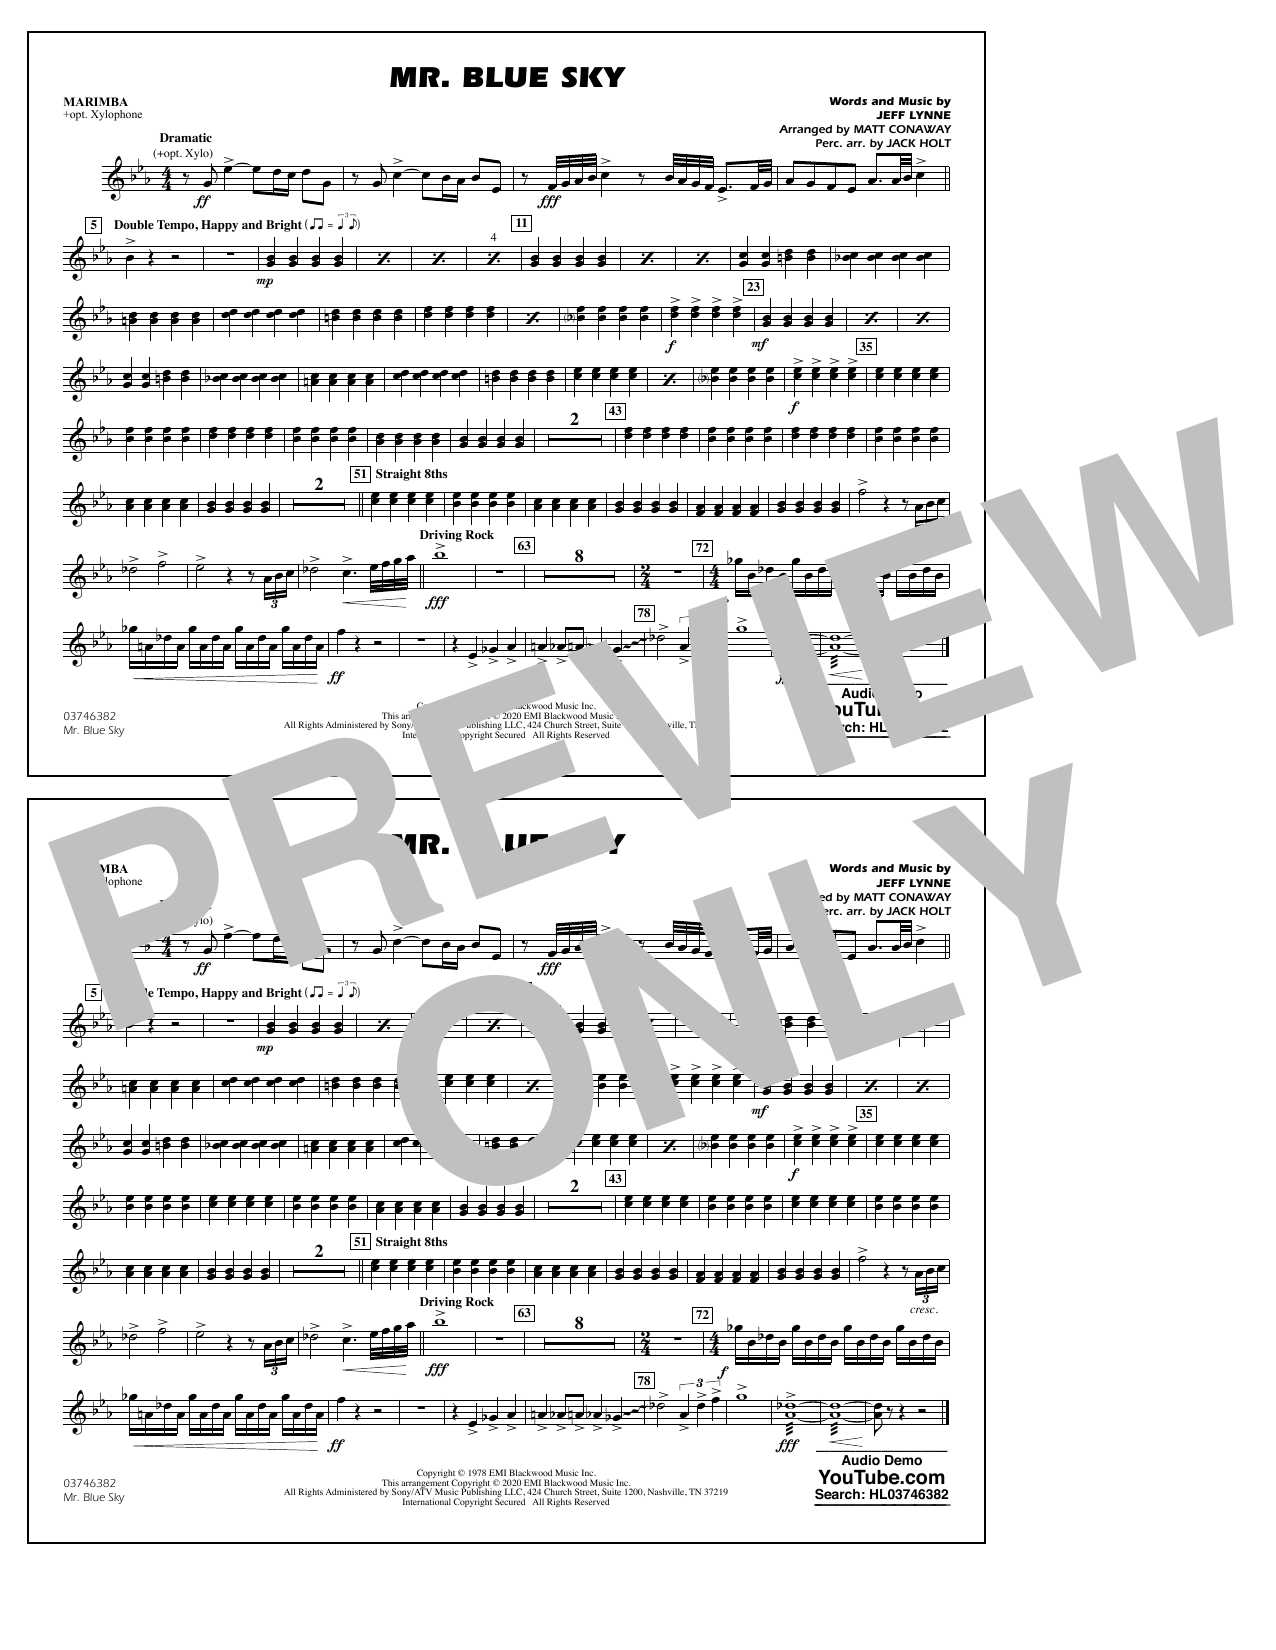 Mr. Blue Sky (arr. Matt Conaway) - Marimba Sheet Music